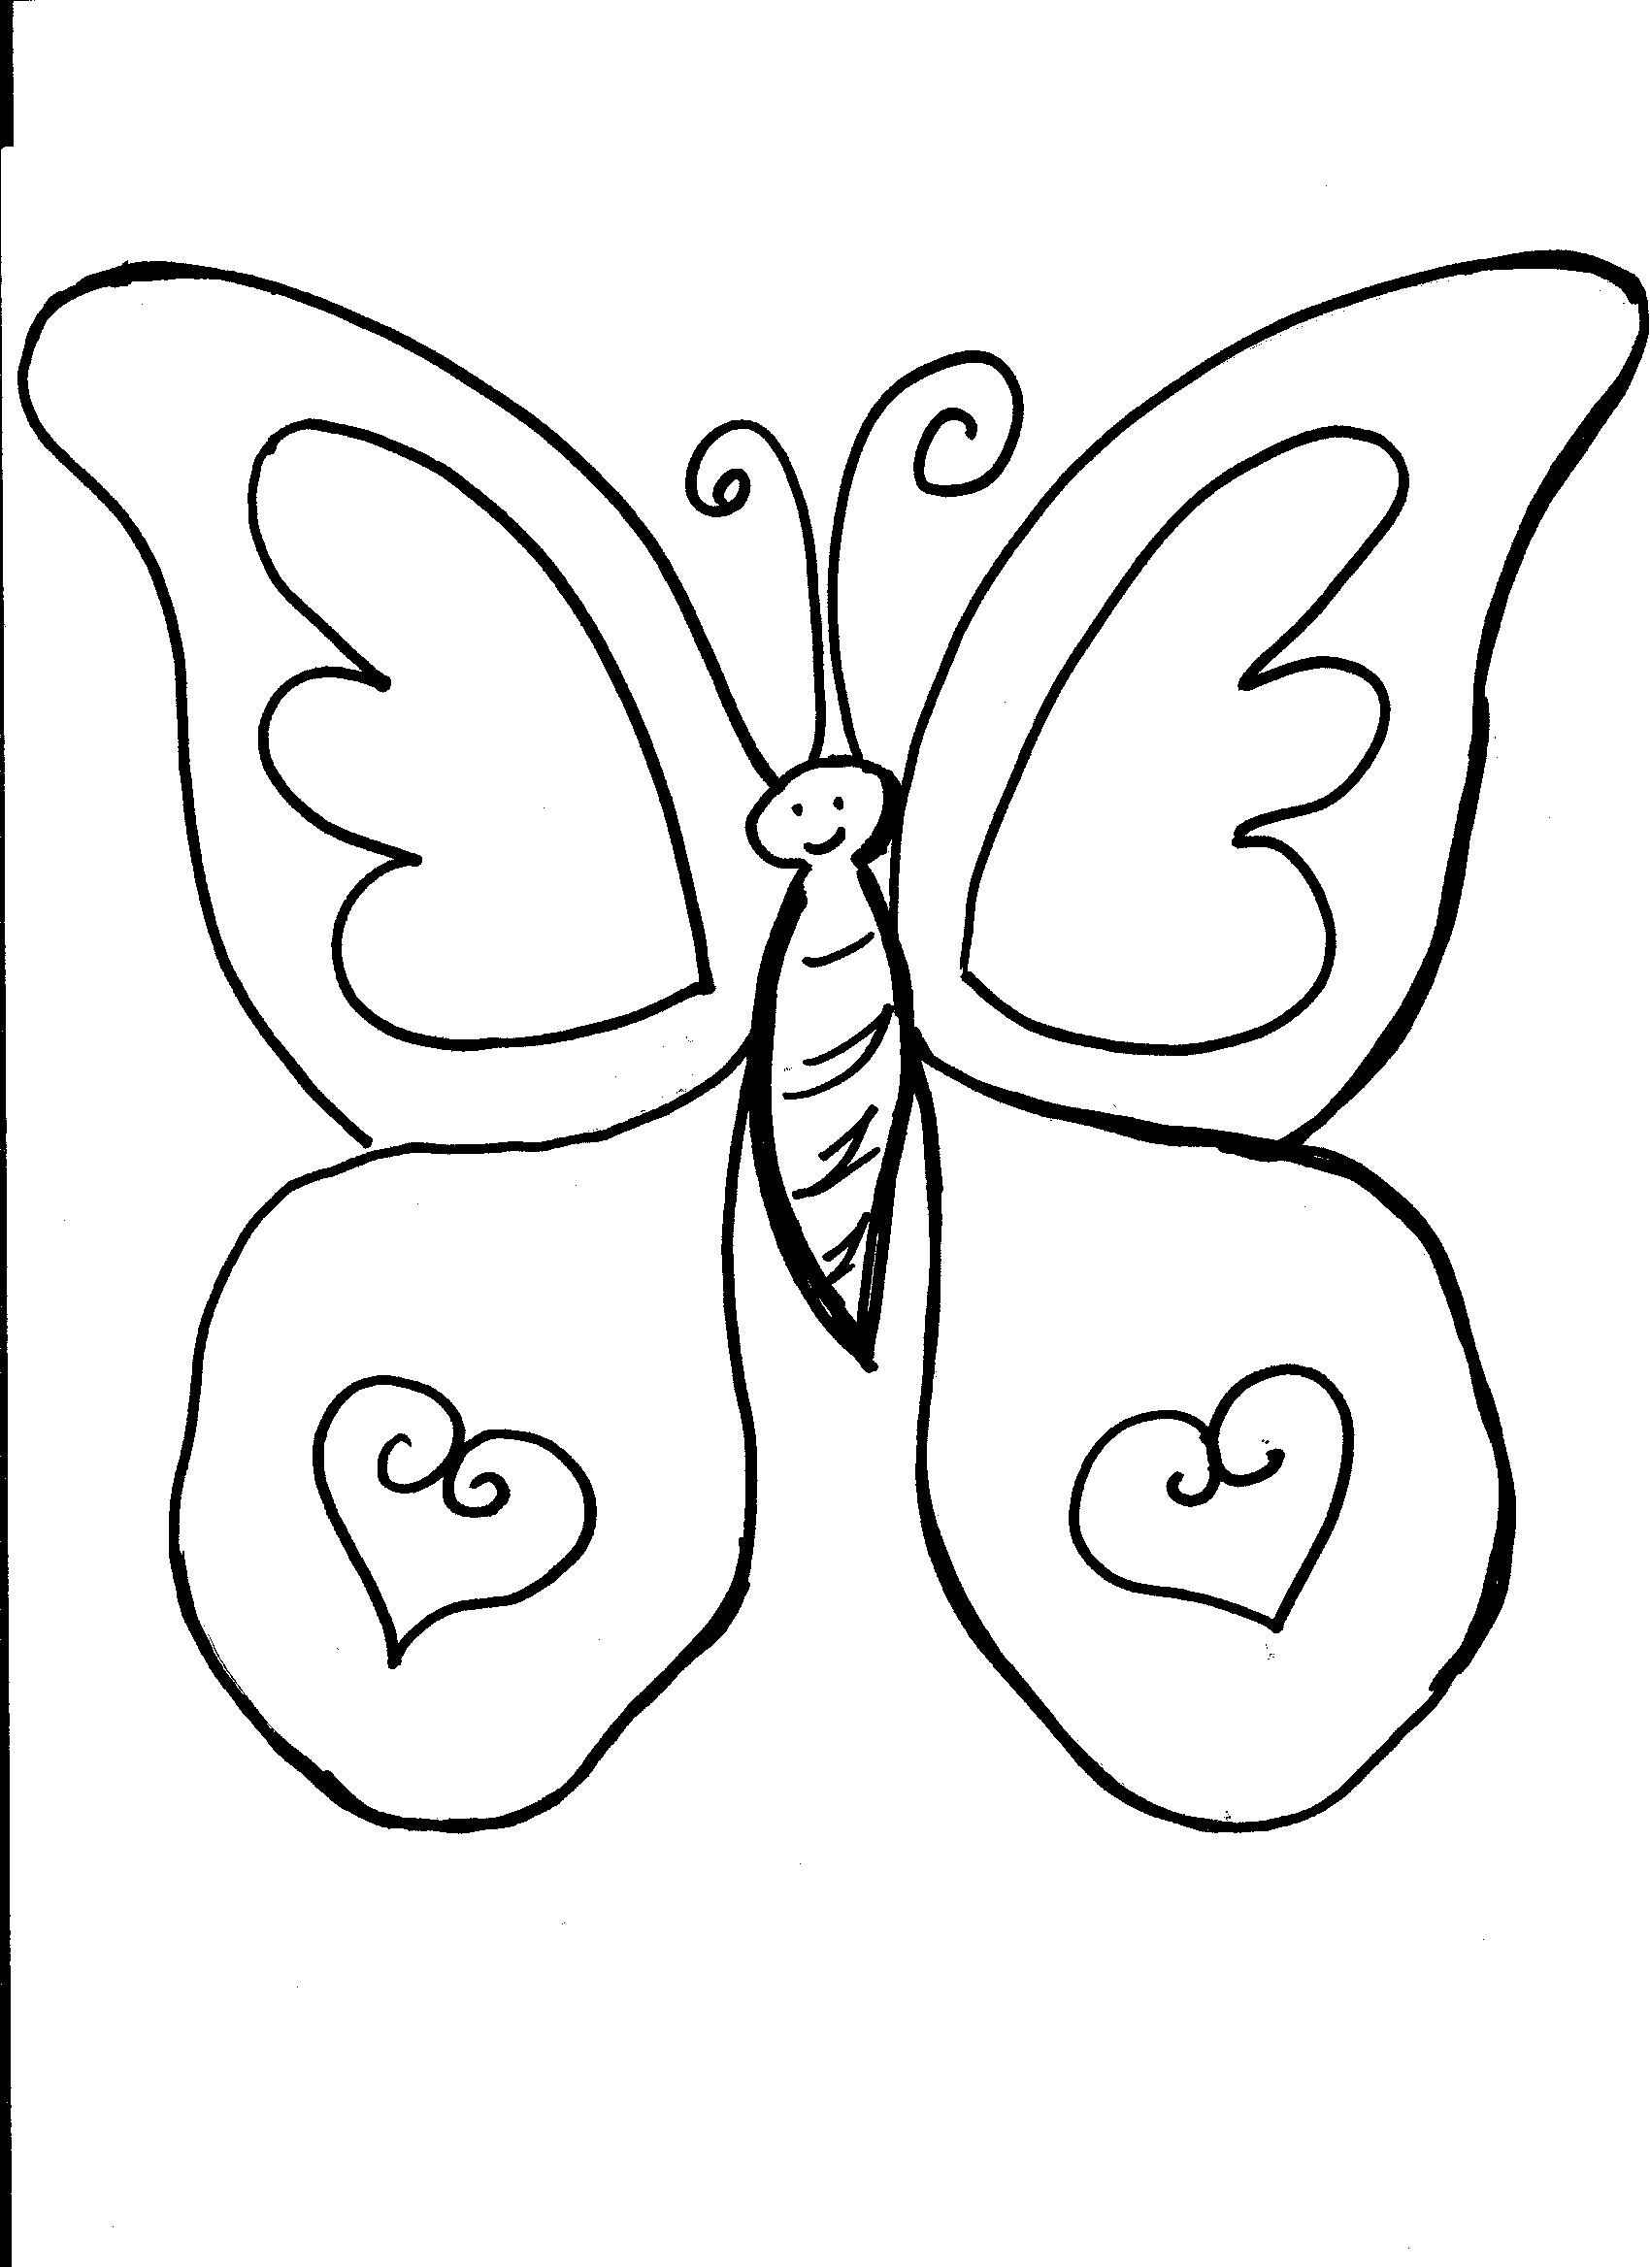 printable butterfly coloring sheets free printable butterfly coloring pages for kids butterfly sheets printable coloring